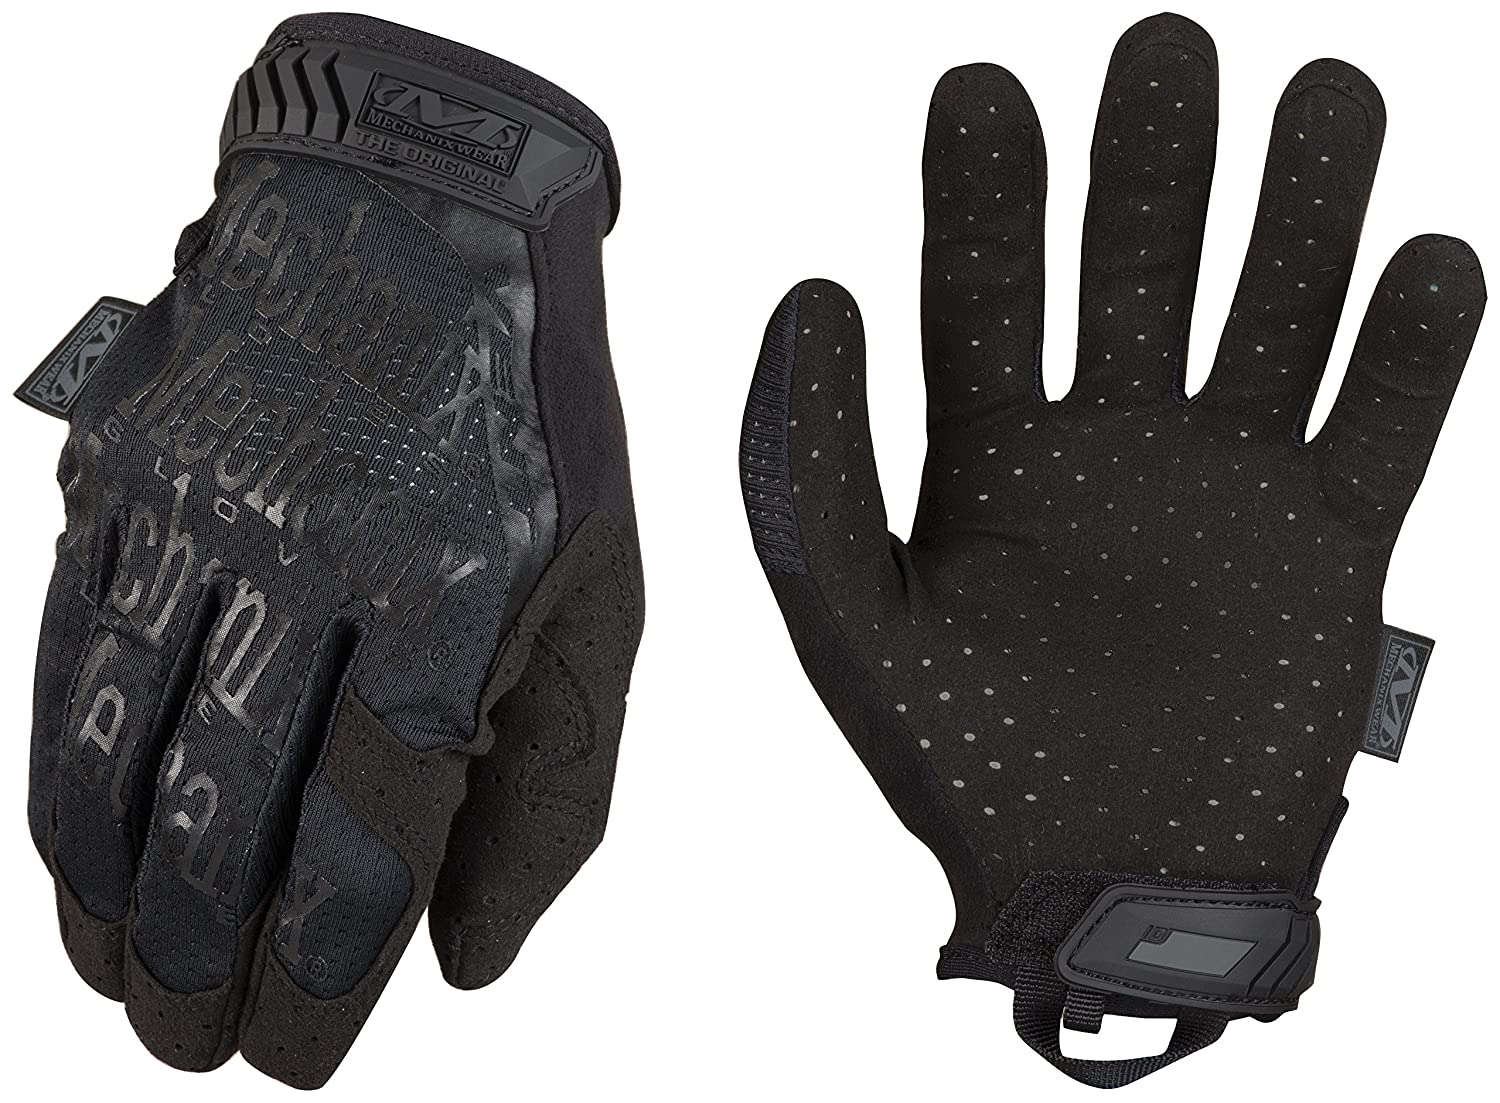 Mechanix Wear - Original Vent Covert Tactical Gloves